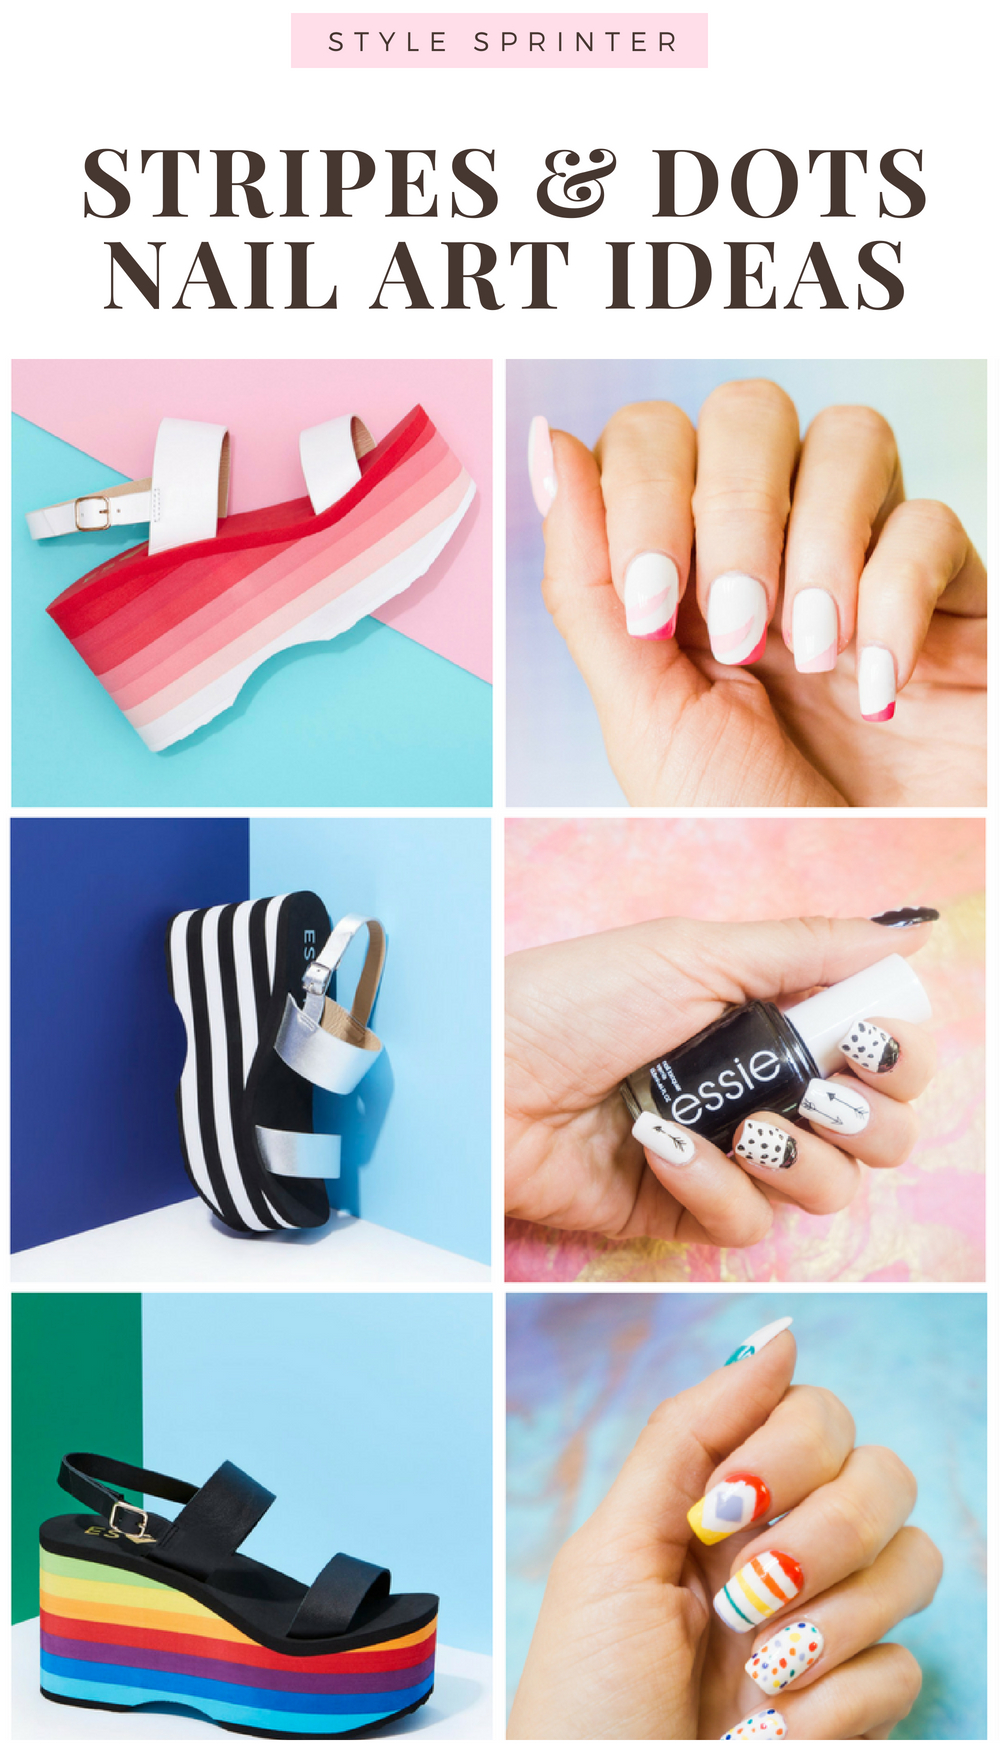 STRIPES & DOTS NAIL ART IDEAS